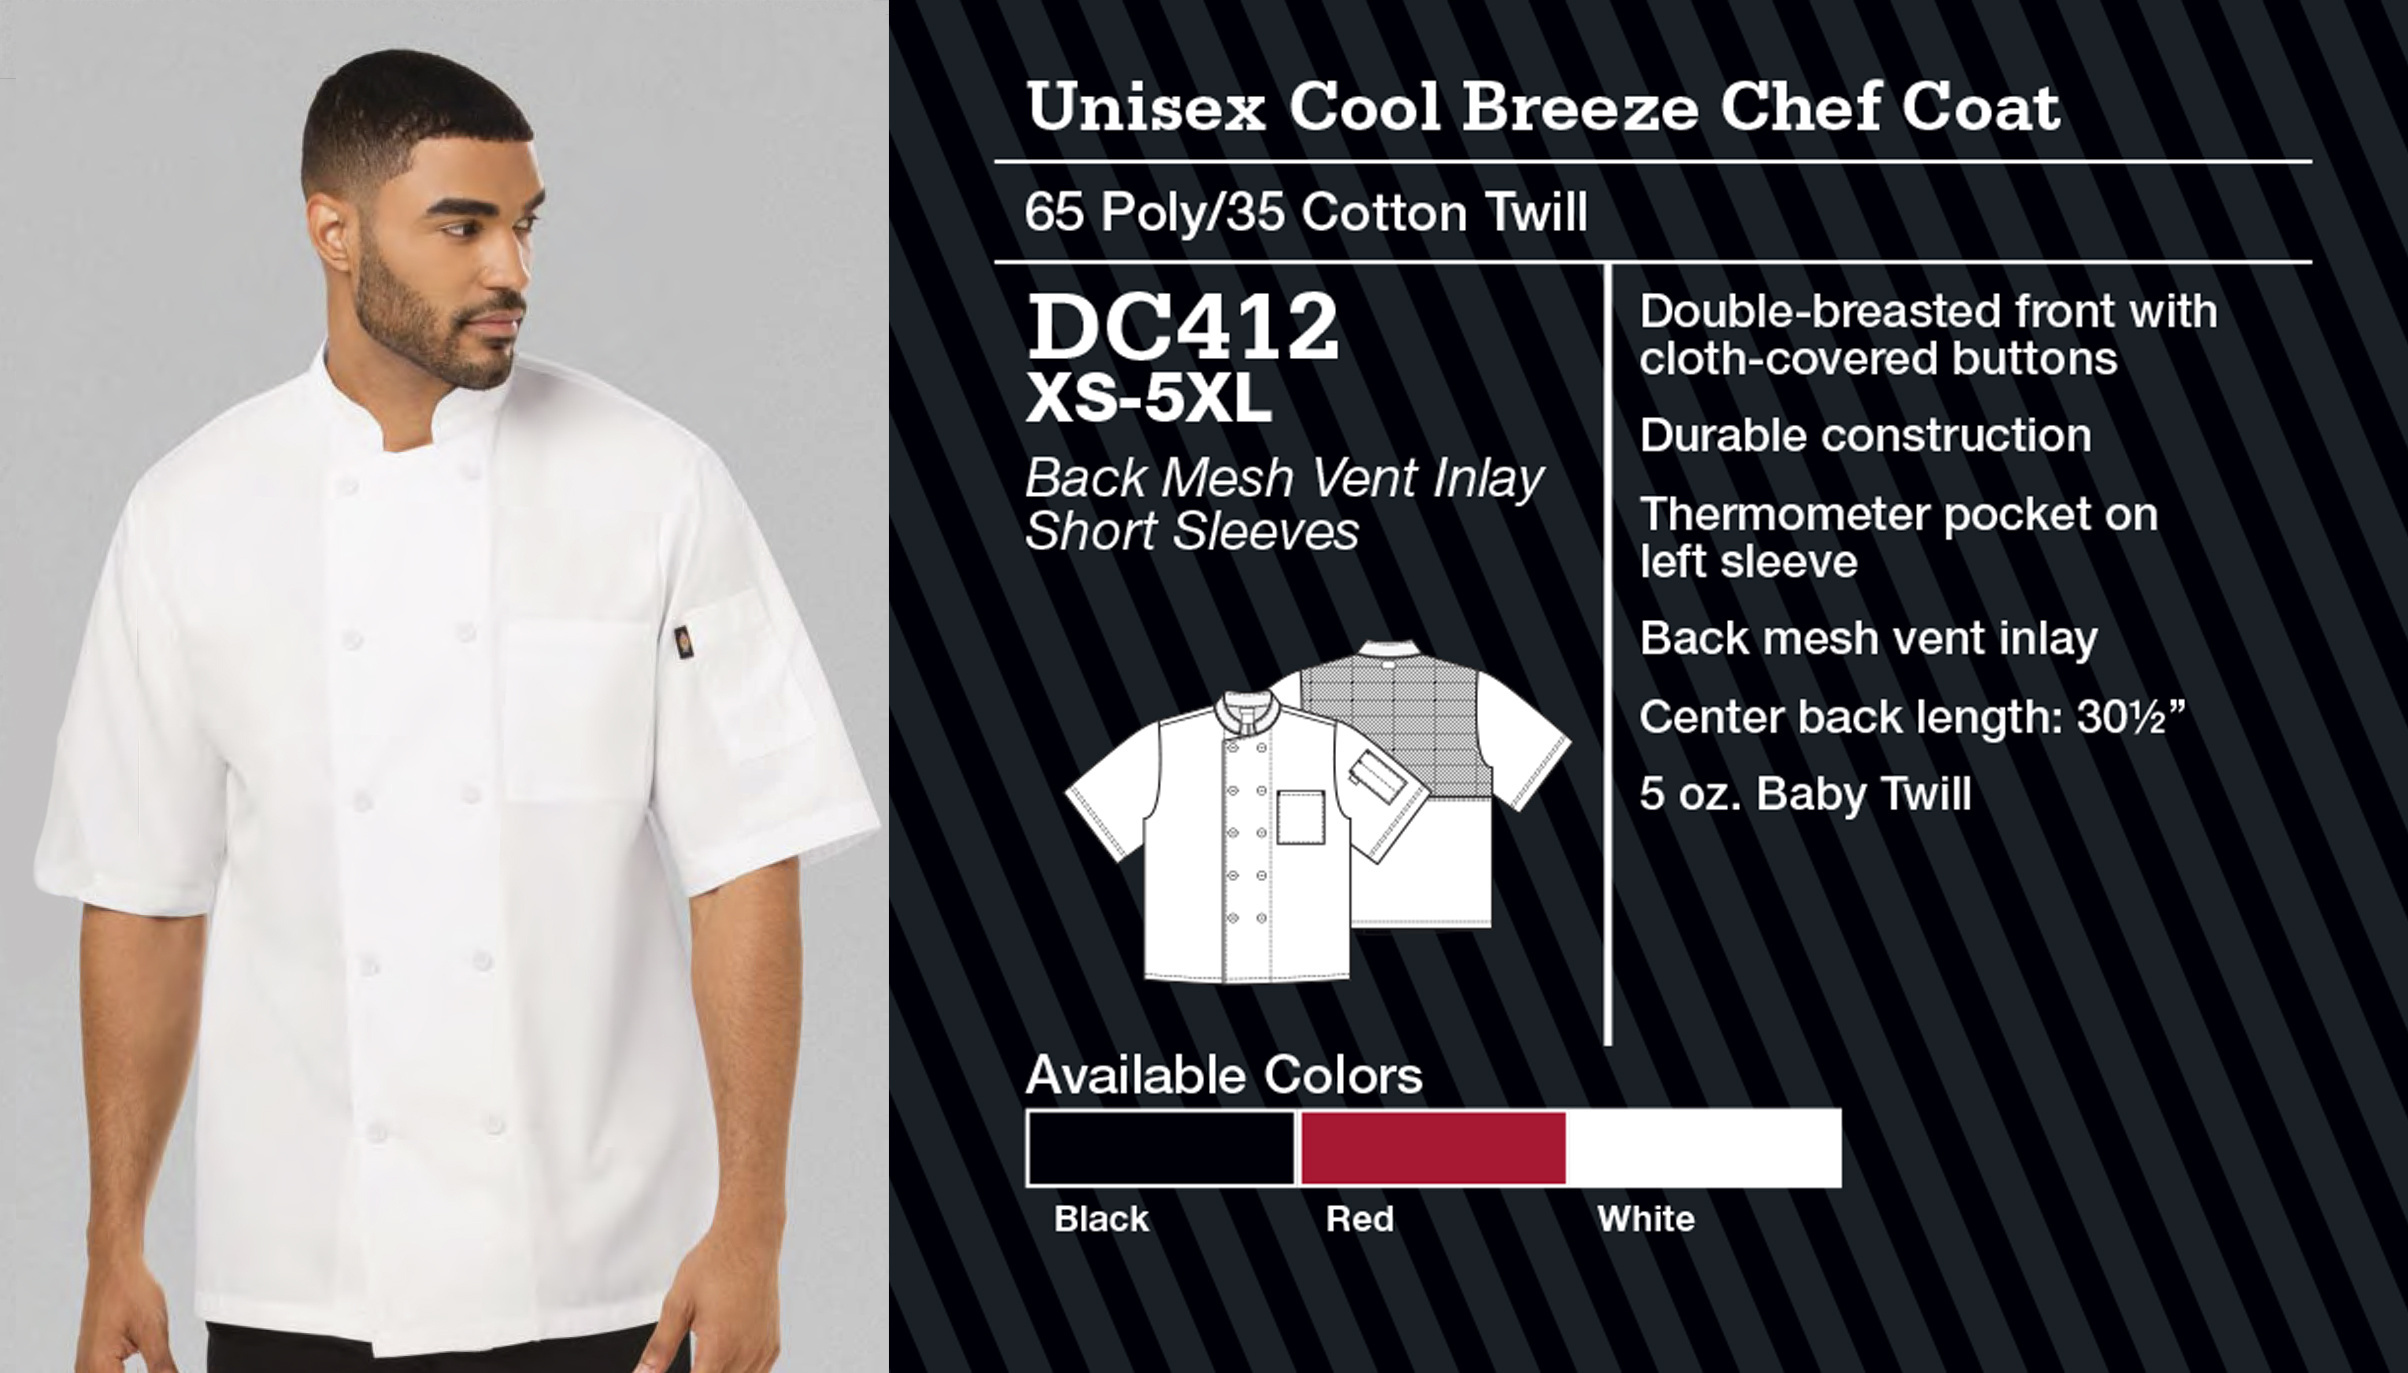 Abrigo de Chef Unisex Cool Breeze. Manga Corta. DC410.